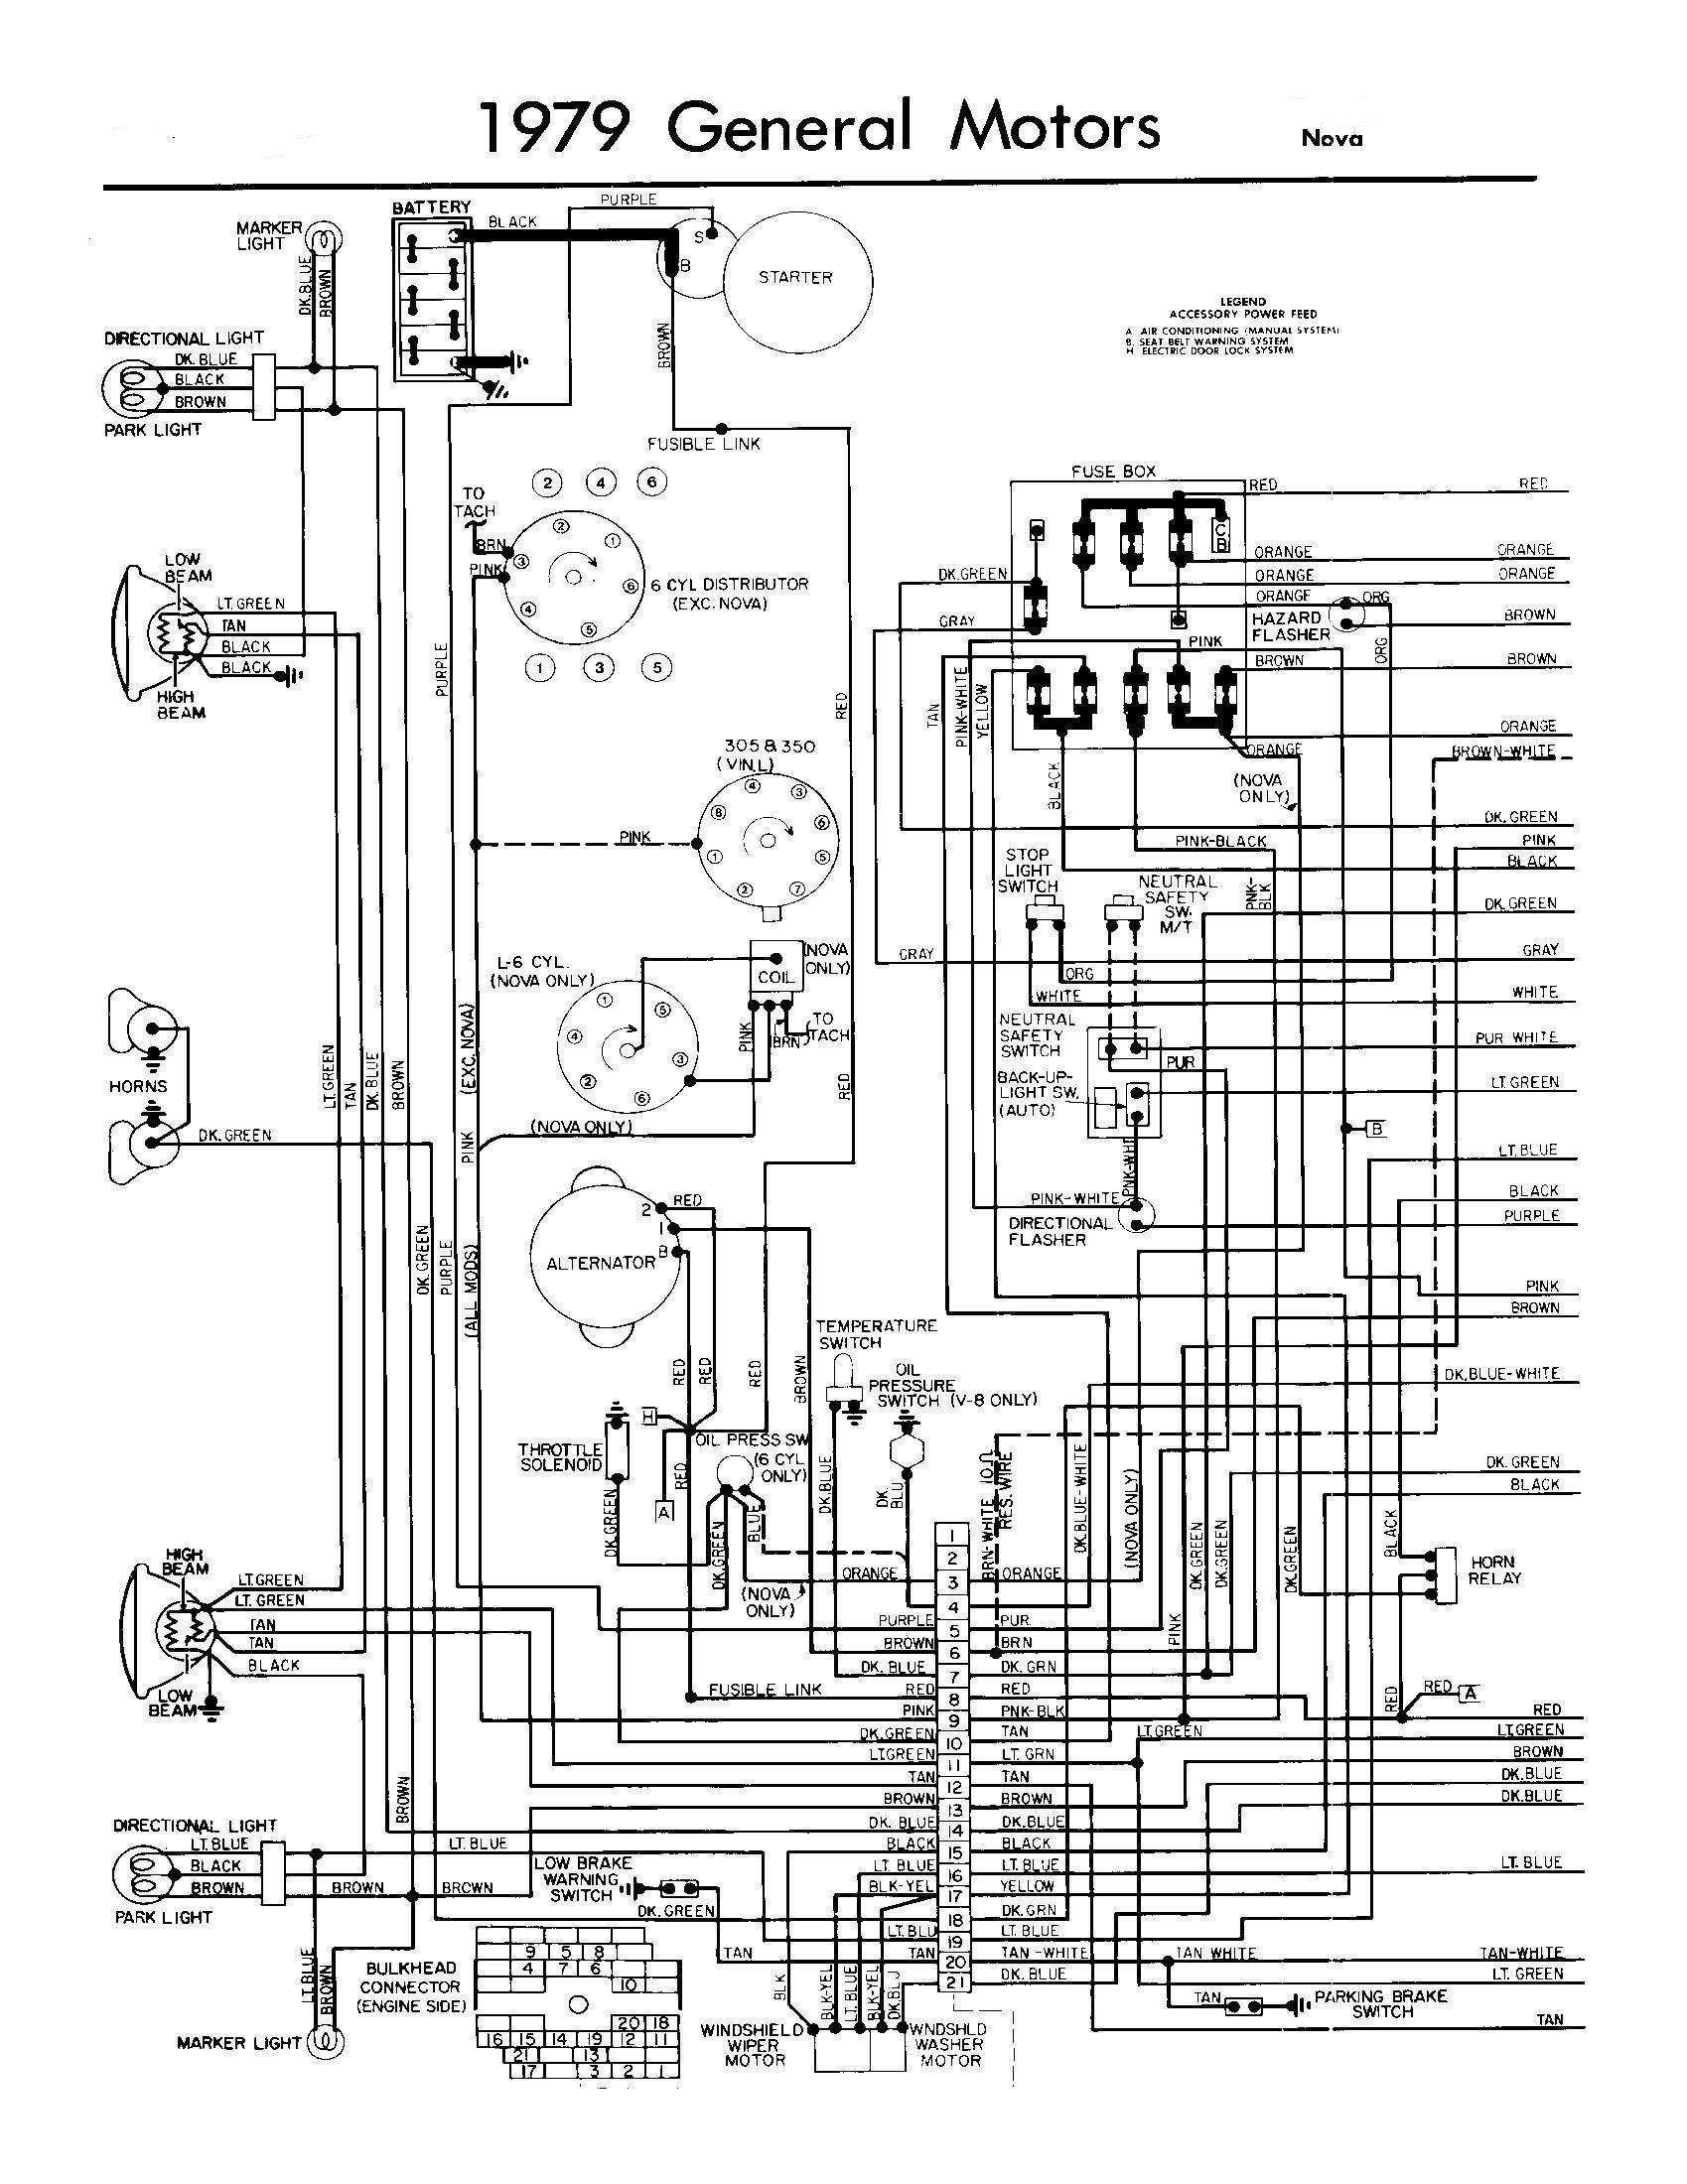 Bobcat 763 Wiring Diagram from mainetreasurechest.com